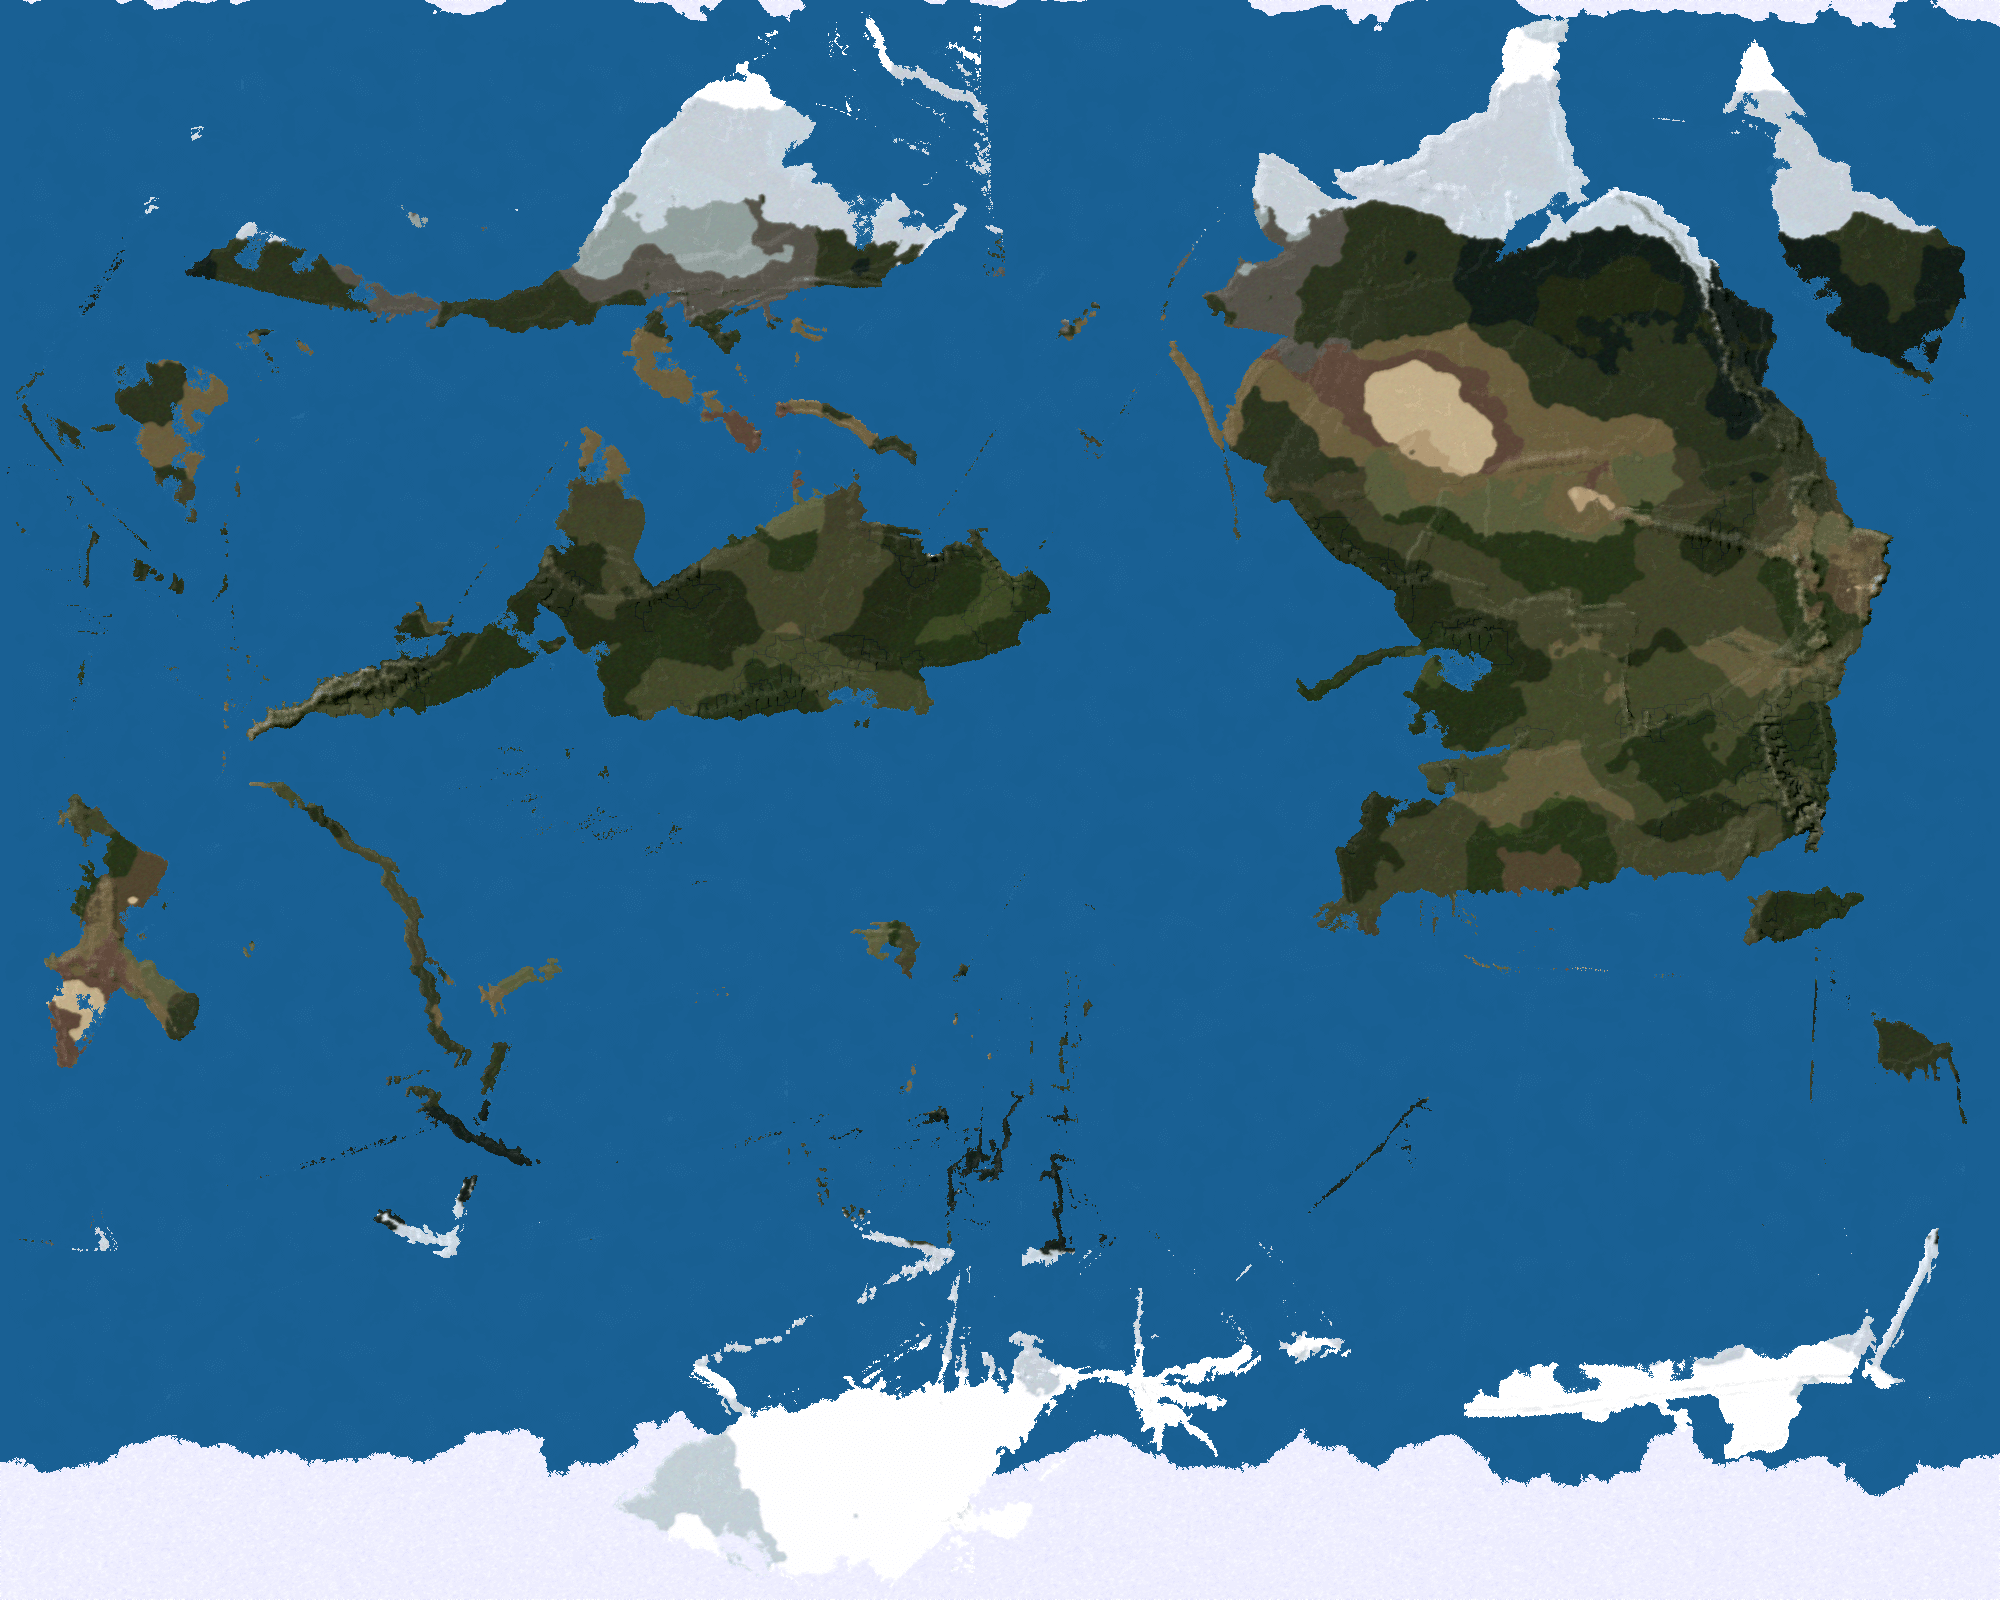 Diving Into Procedural Content Generation, With WorldEngine